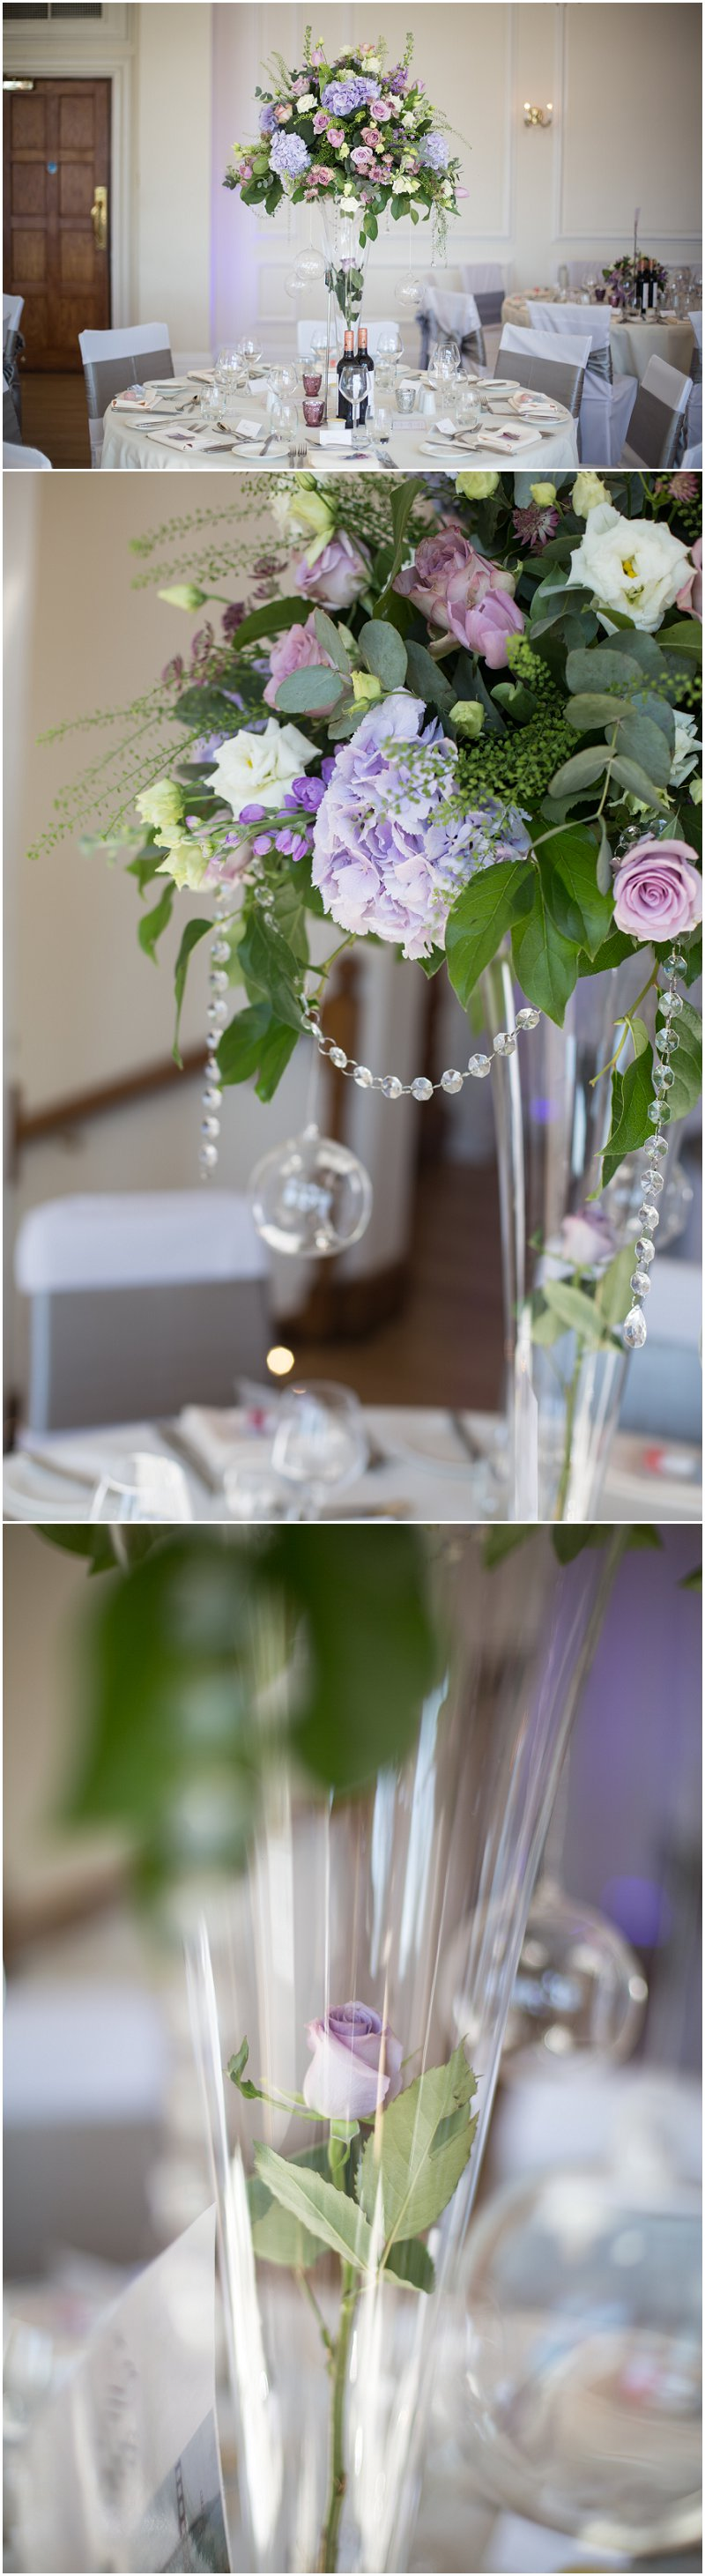 Beautiful table decorations at West Tower wedding venue